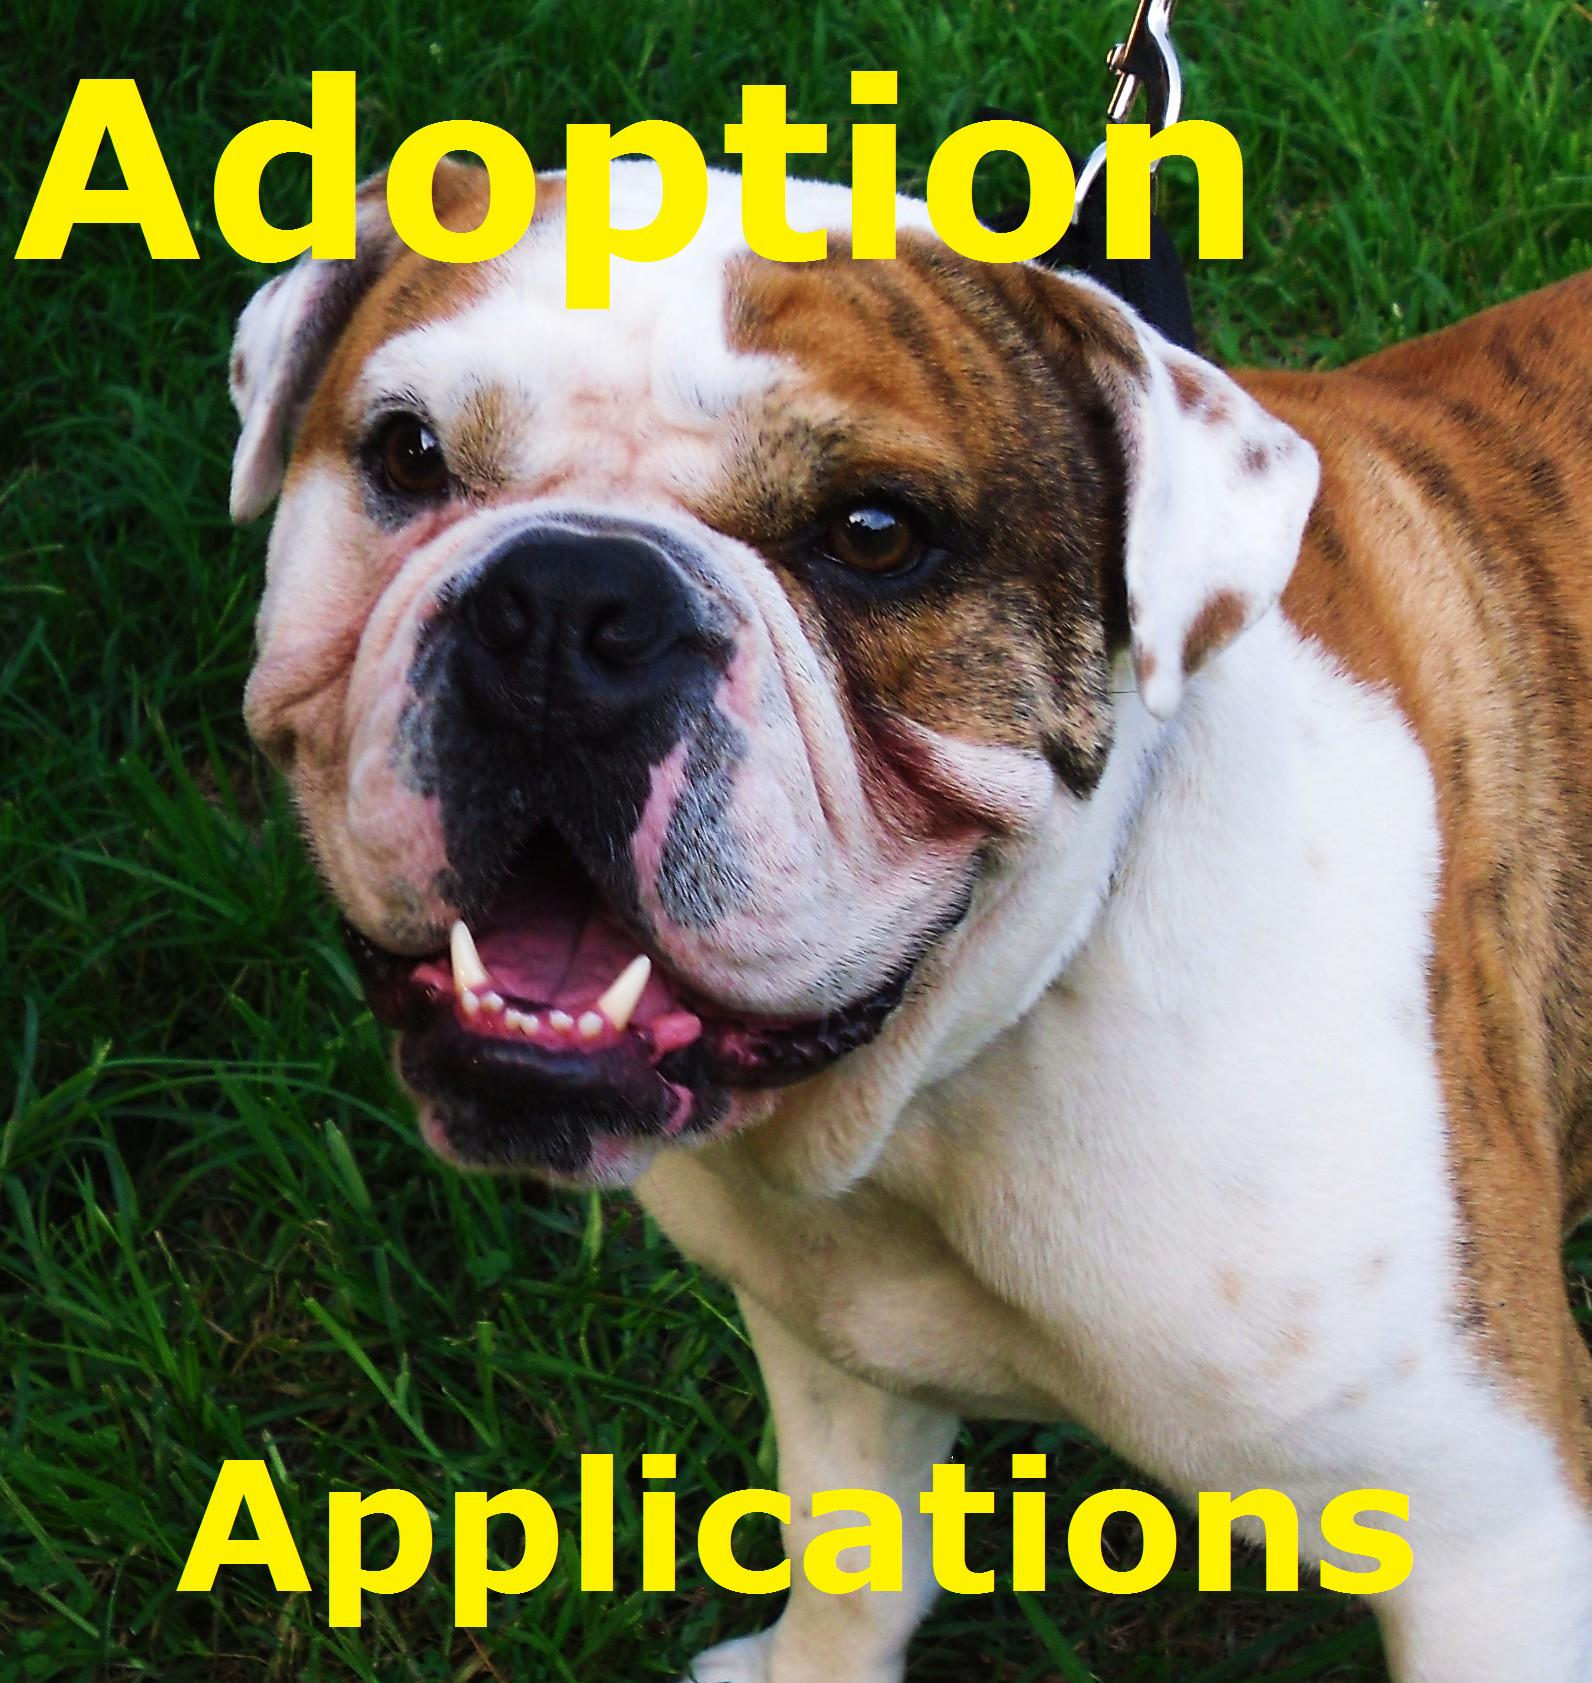 Adoption Application Poster2